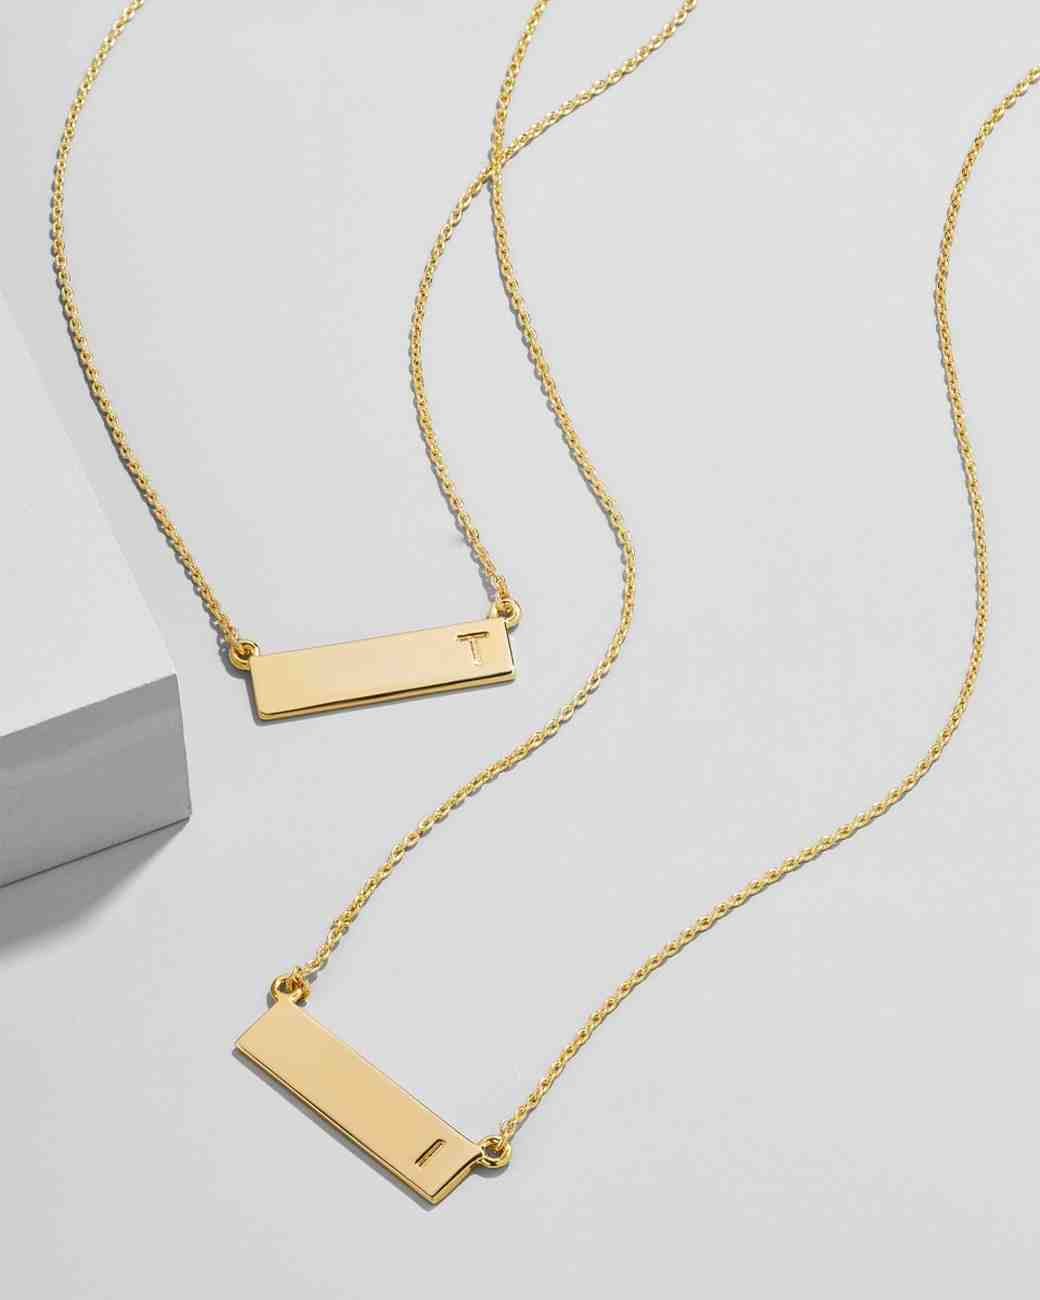 baublebar initial bar pendant necklace